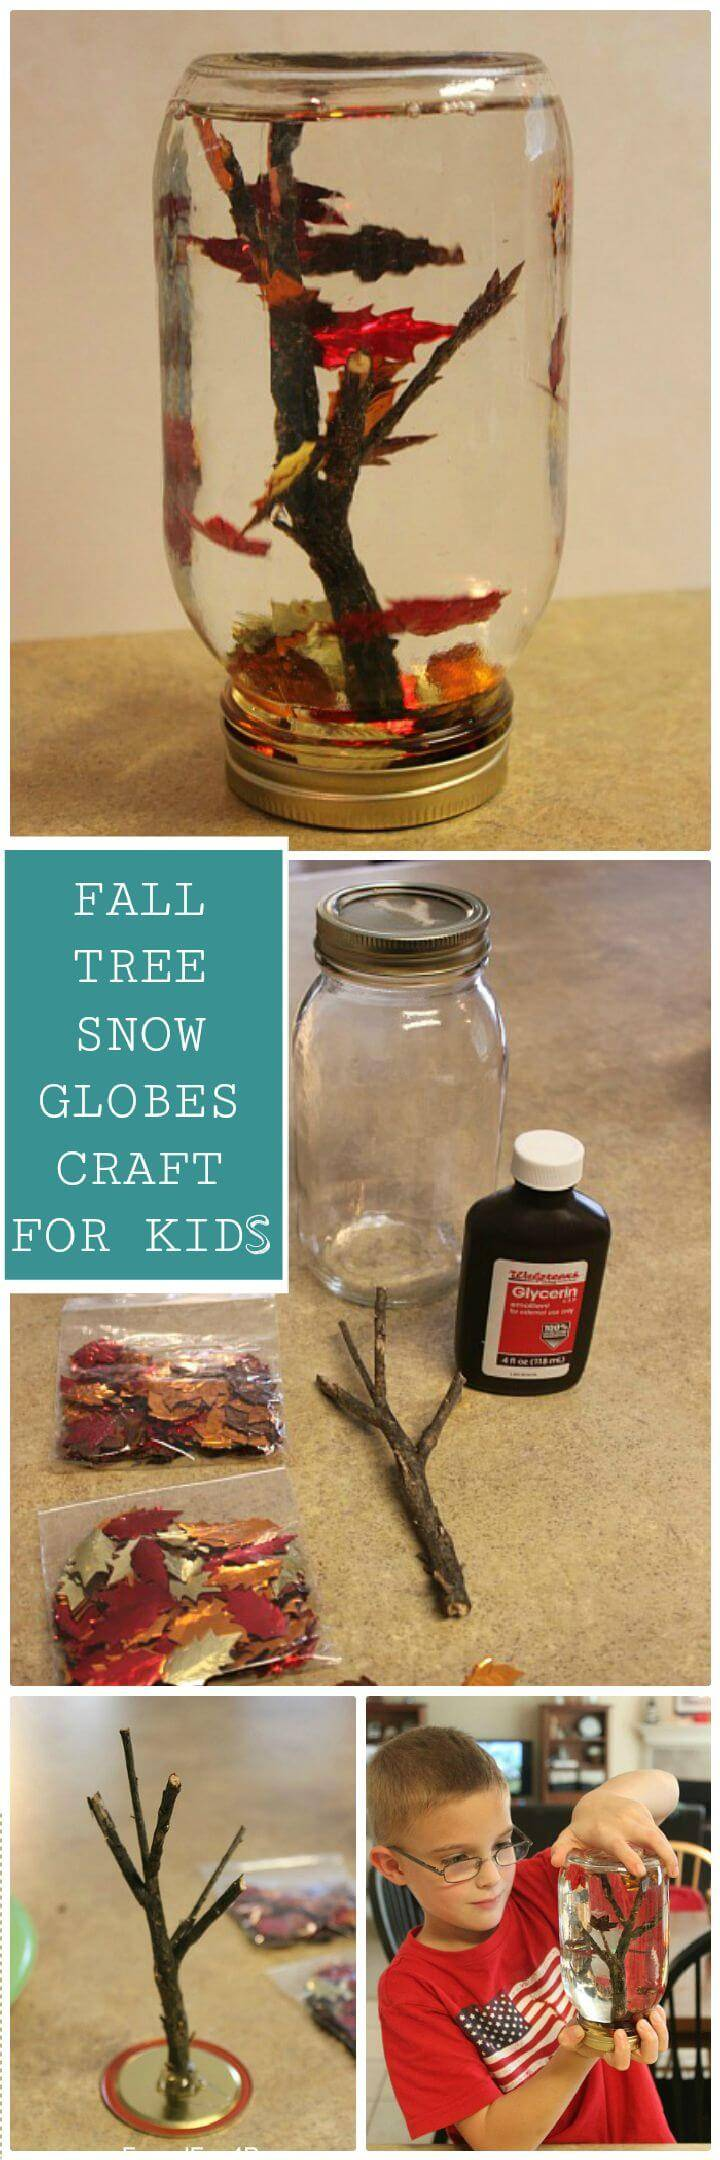 DIY Fall Tree Snow Globes Craft For Kids